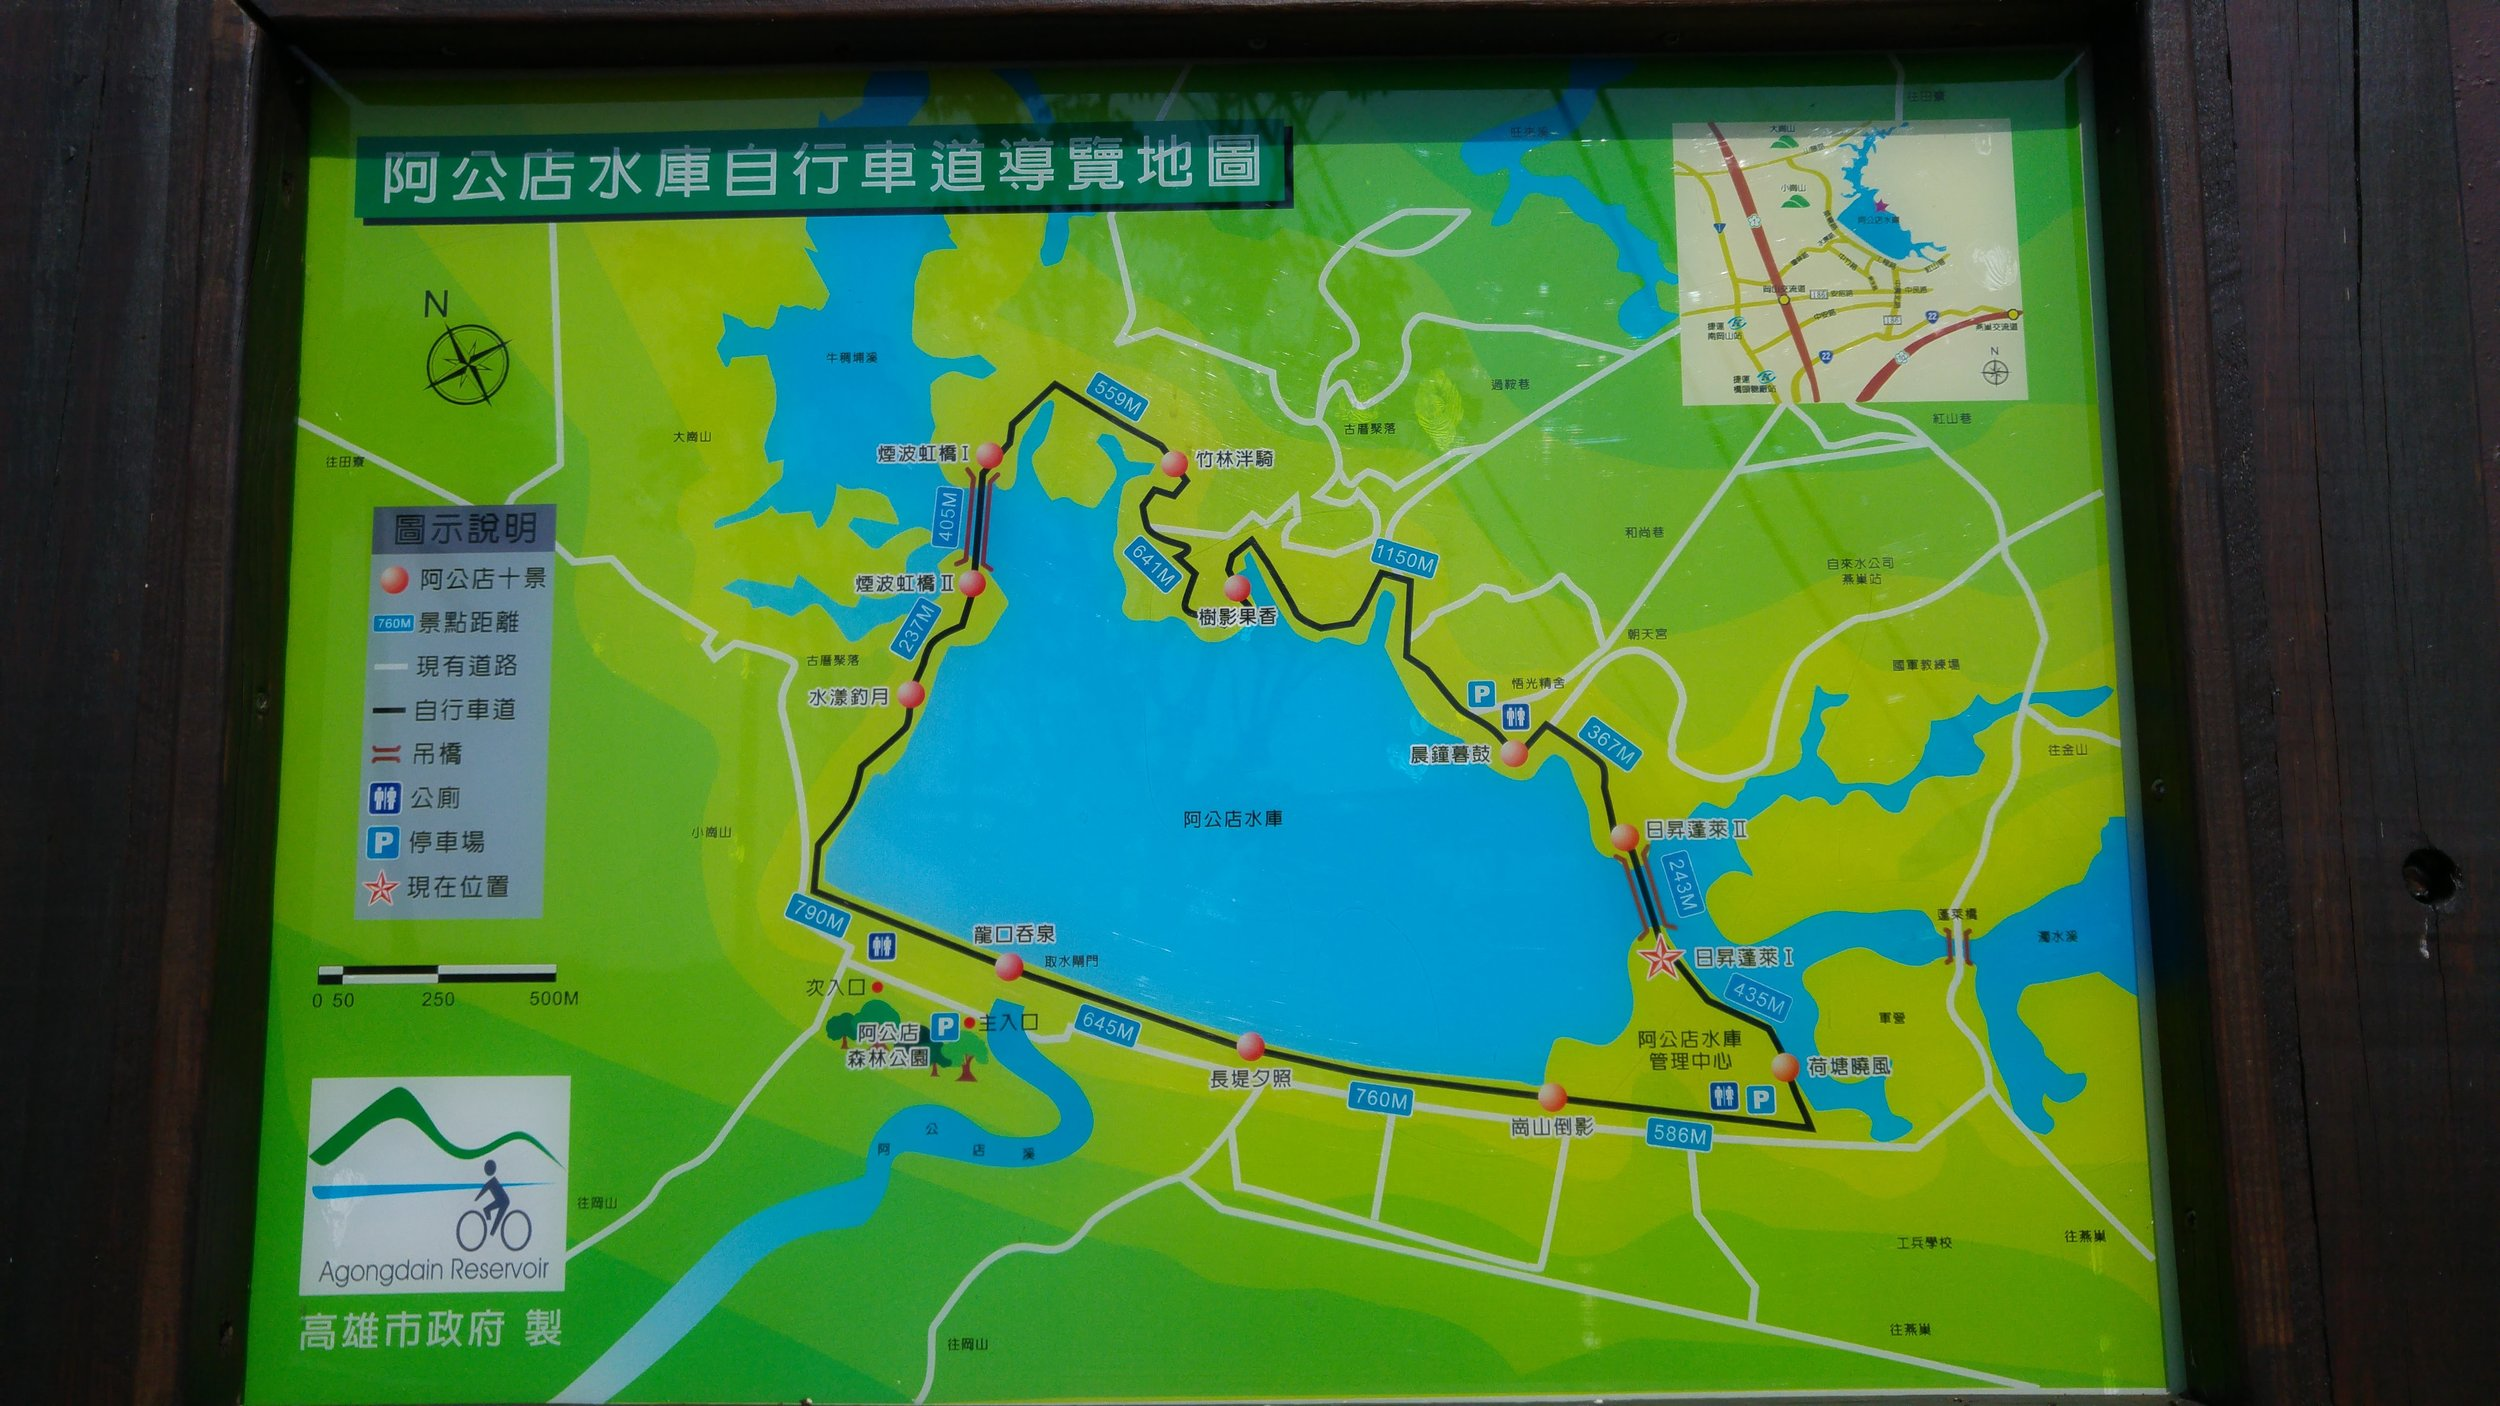 Official Map of Agongdain Reservoir Bikeway made by Kaohsiung City Government